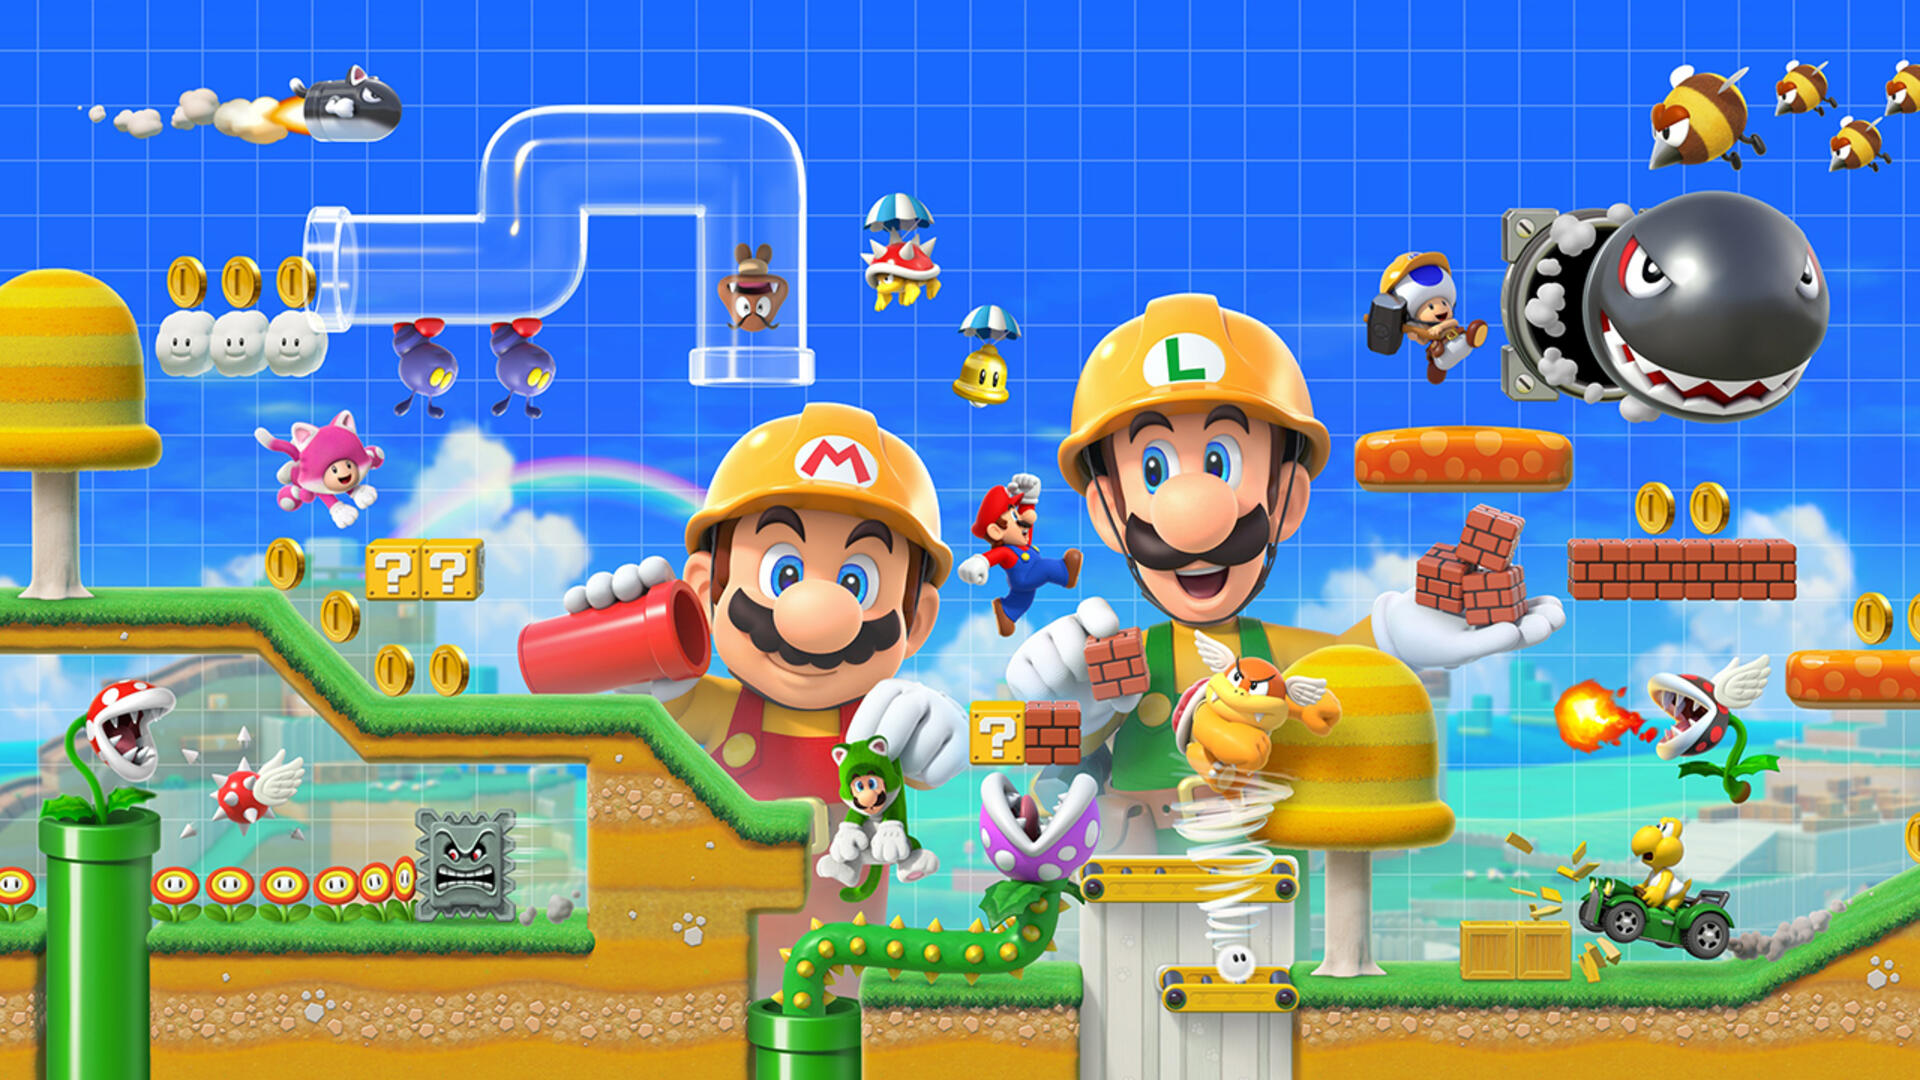 When and Where to Watch Today's Super Mario Maker 2 Nintendo Direct